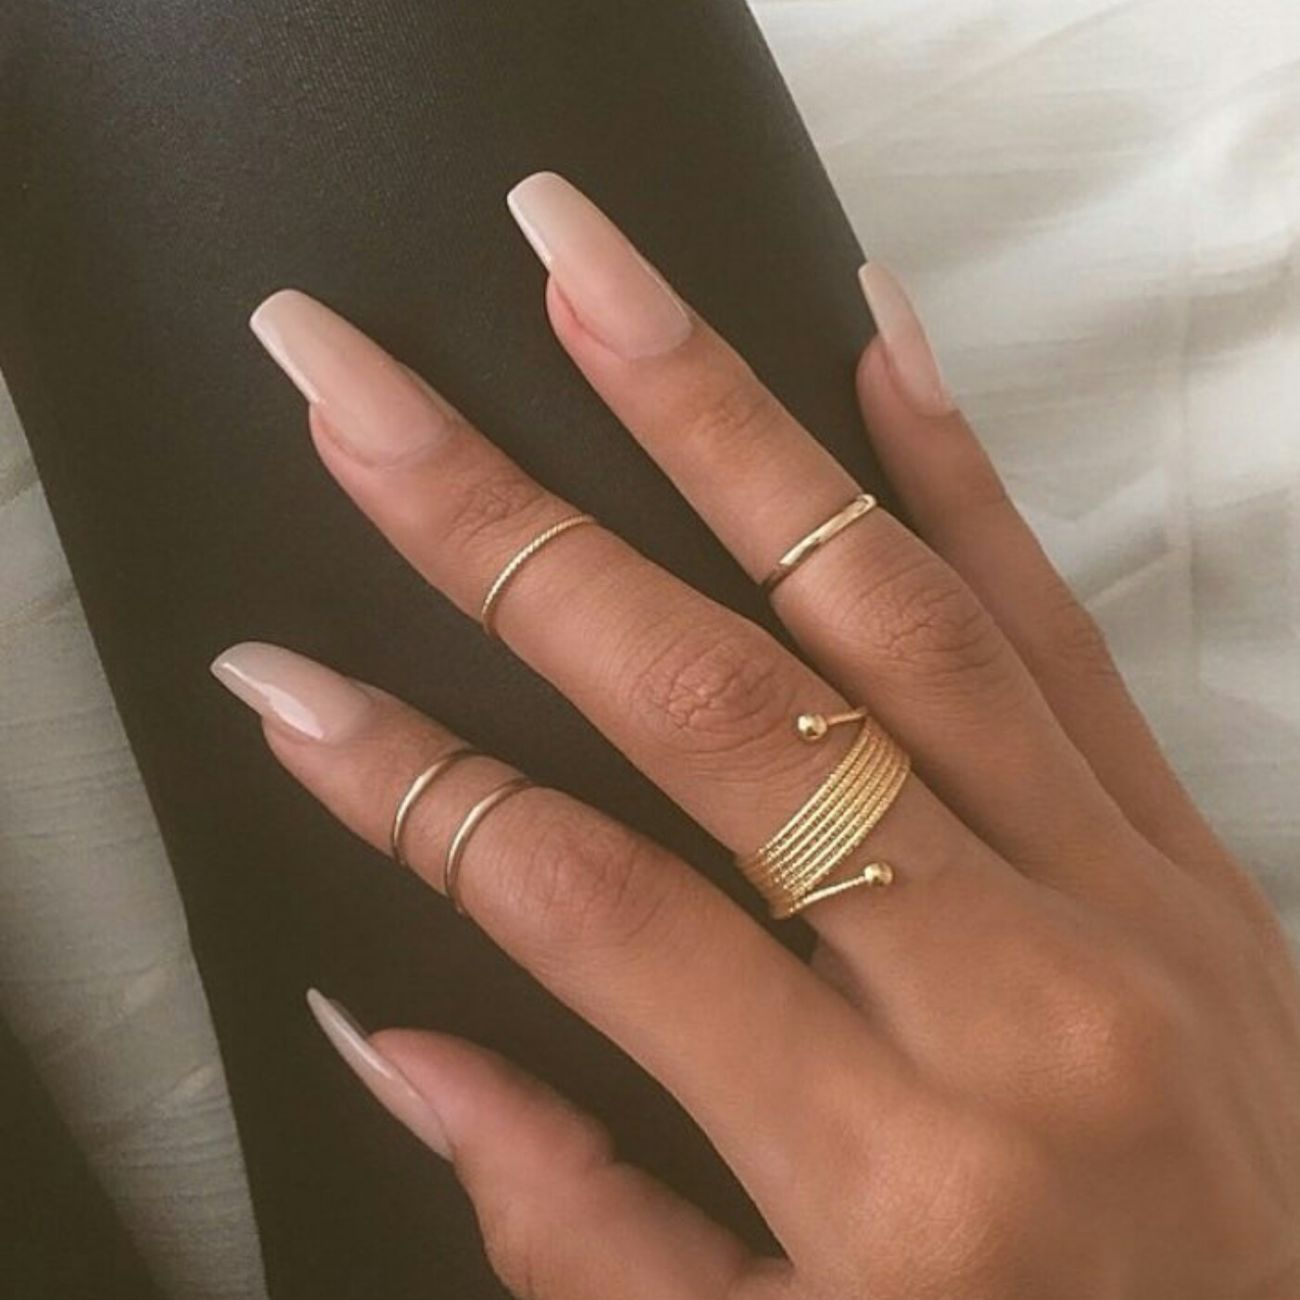 Nails Nails Done Long Nails Fashion Model Aesthetics Gorgeous Photography Rings Hand